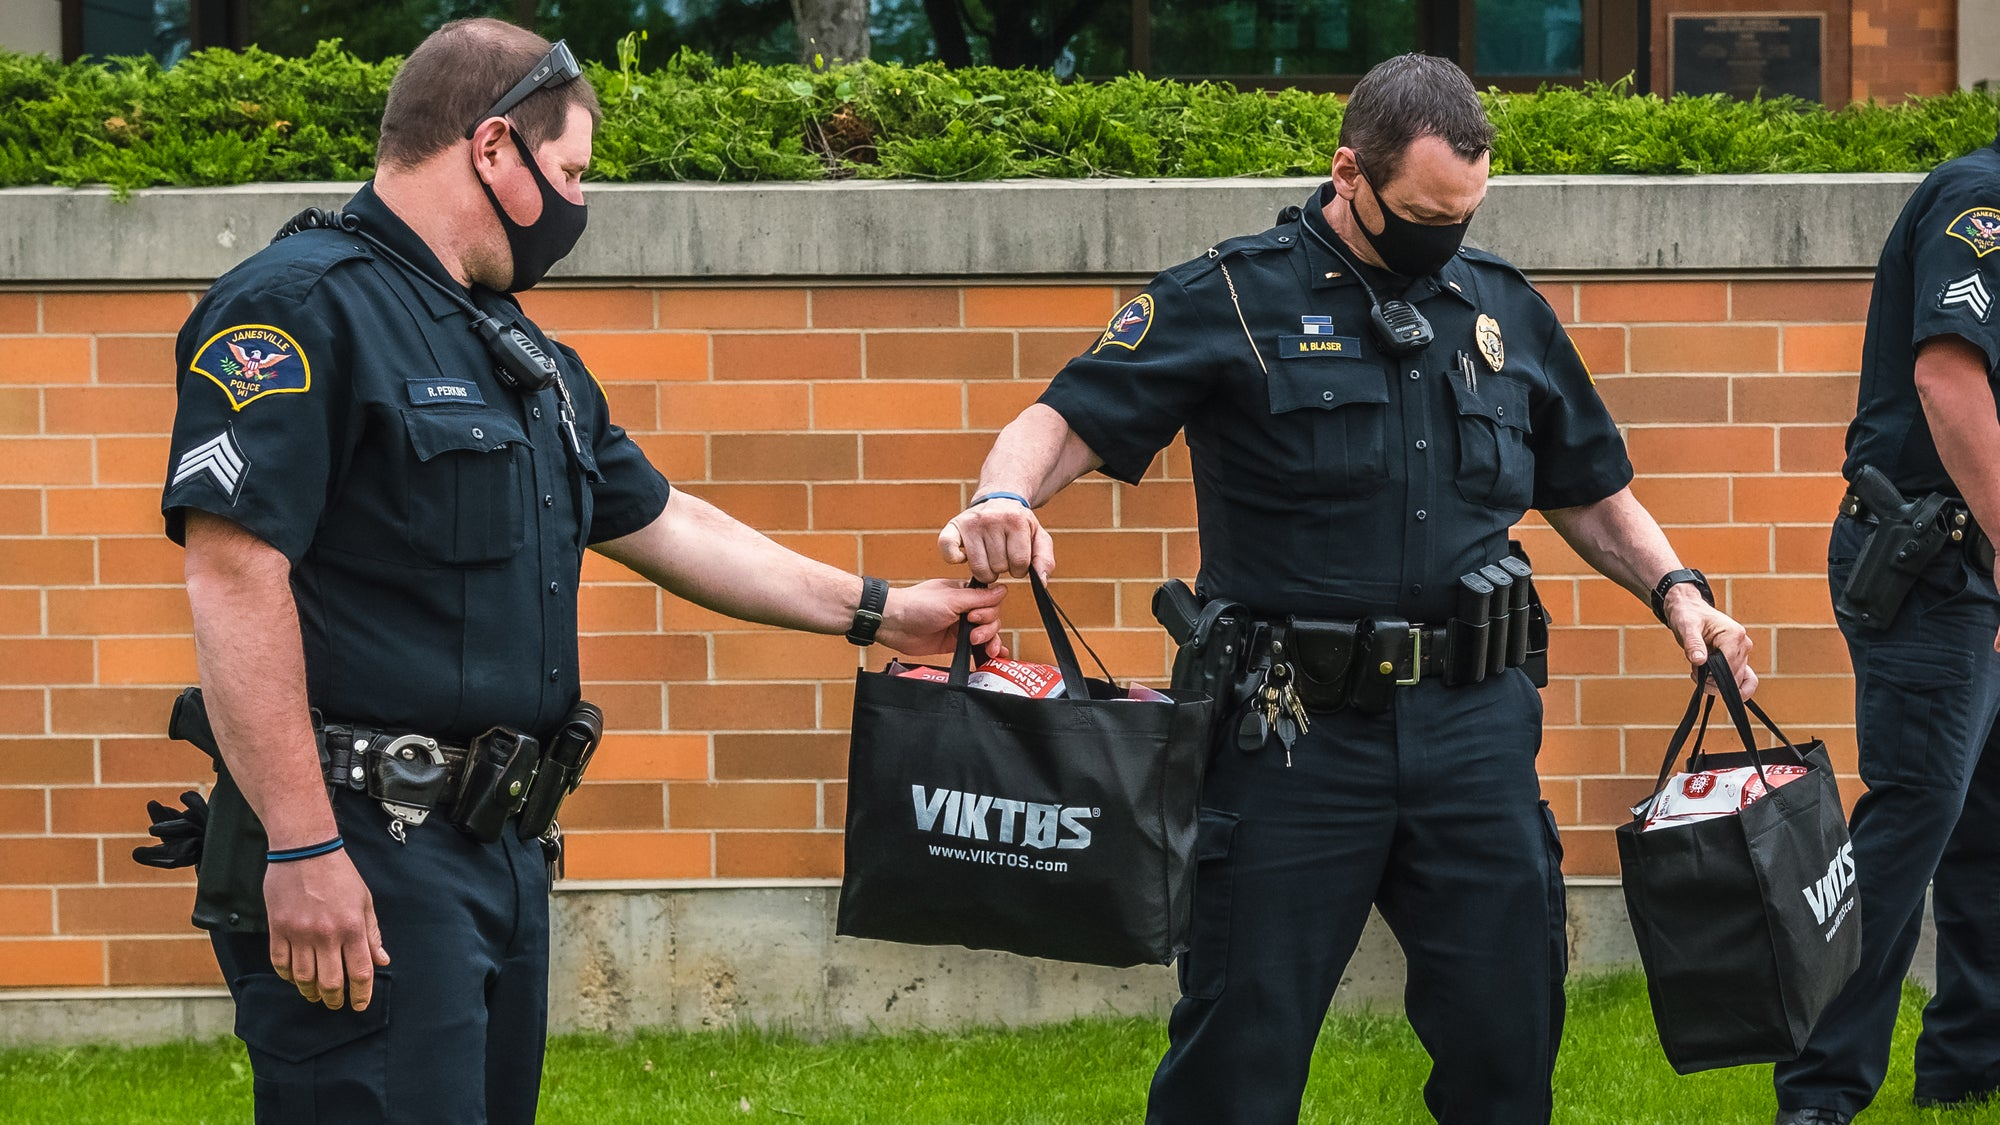 VIKTOS and MyMedic™ donate 200 Pandemic Medic™ kits to Janesville, WI Police and Fire